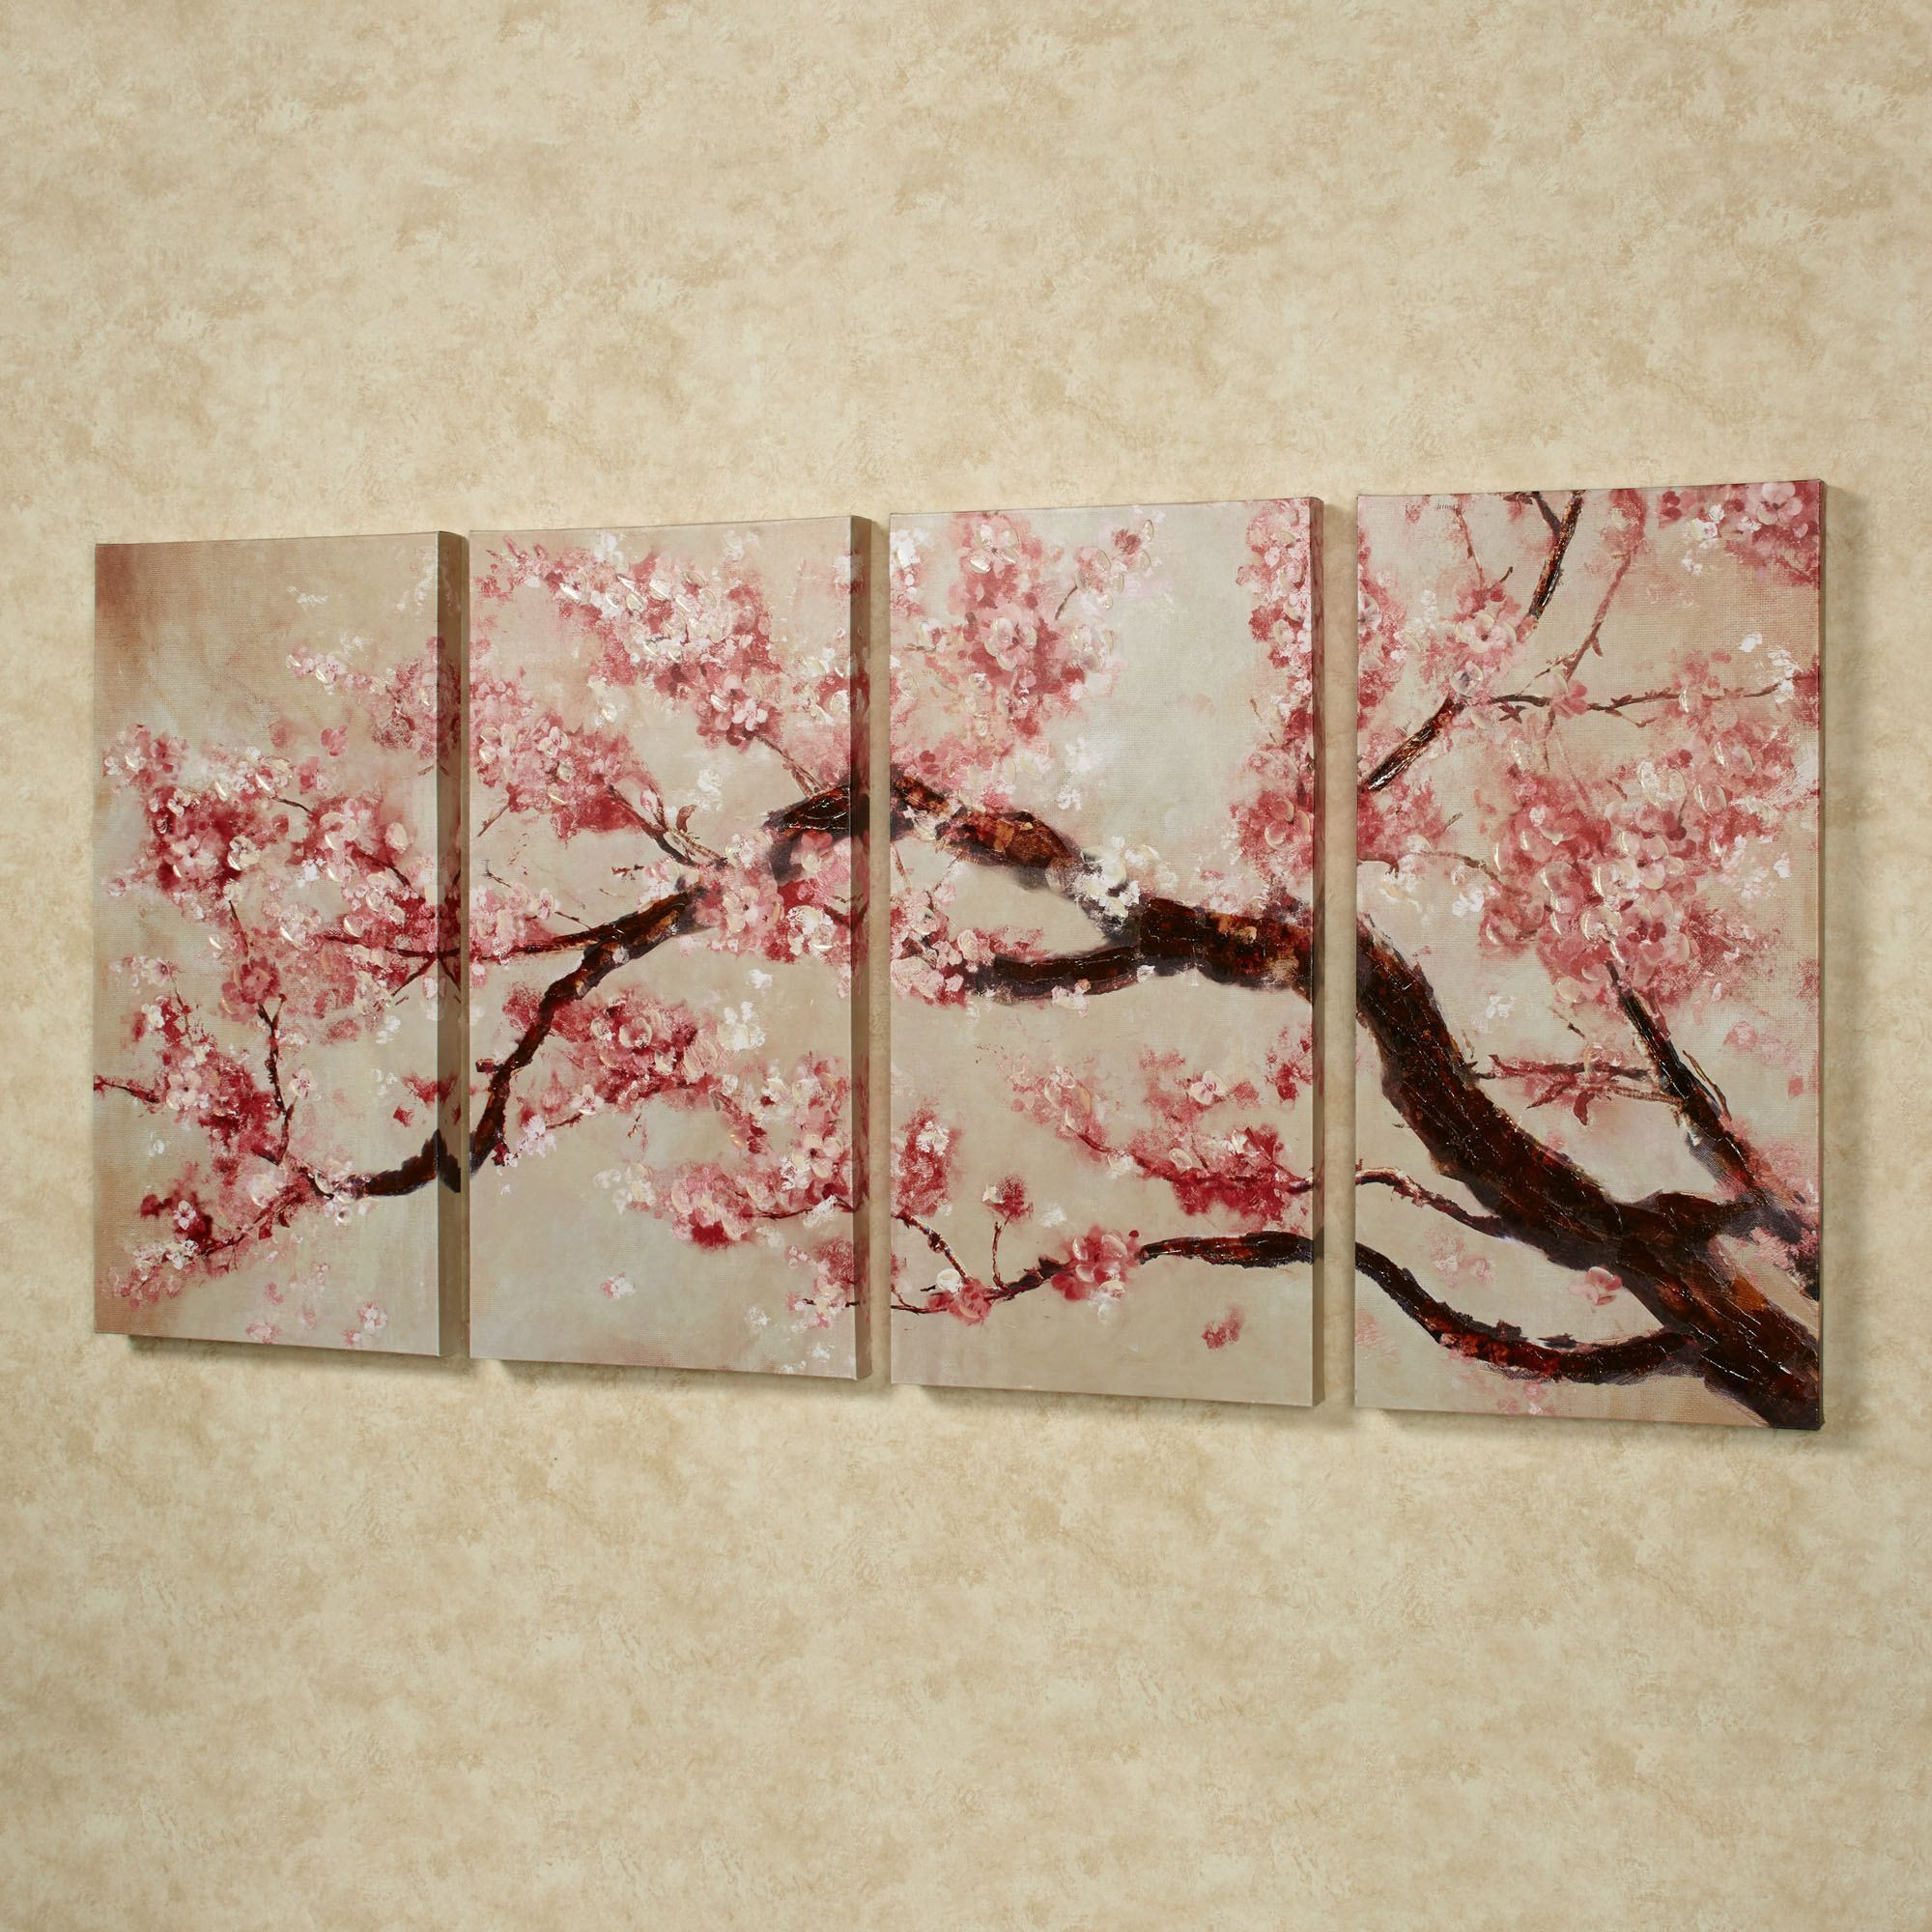 Pin By Athanasie Chirani On Flori De Mar In 2021 Cherry Blossom Art Cherry Blossom Painting Blossoms Art